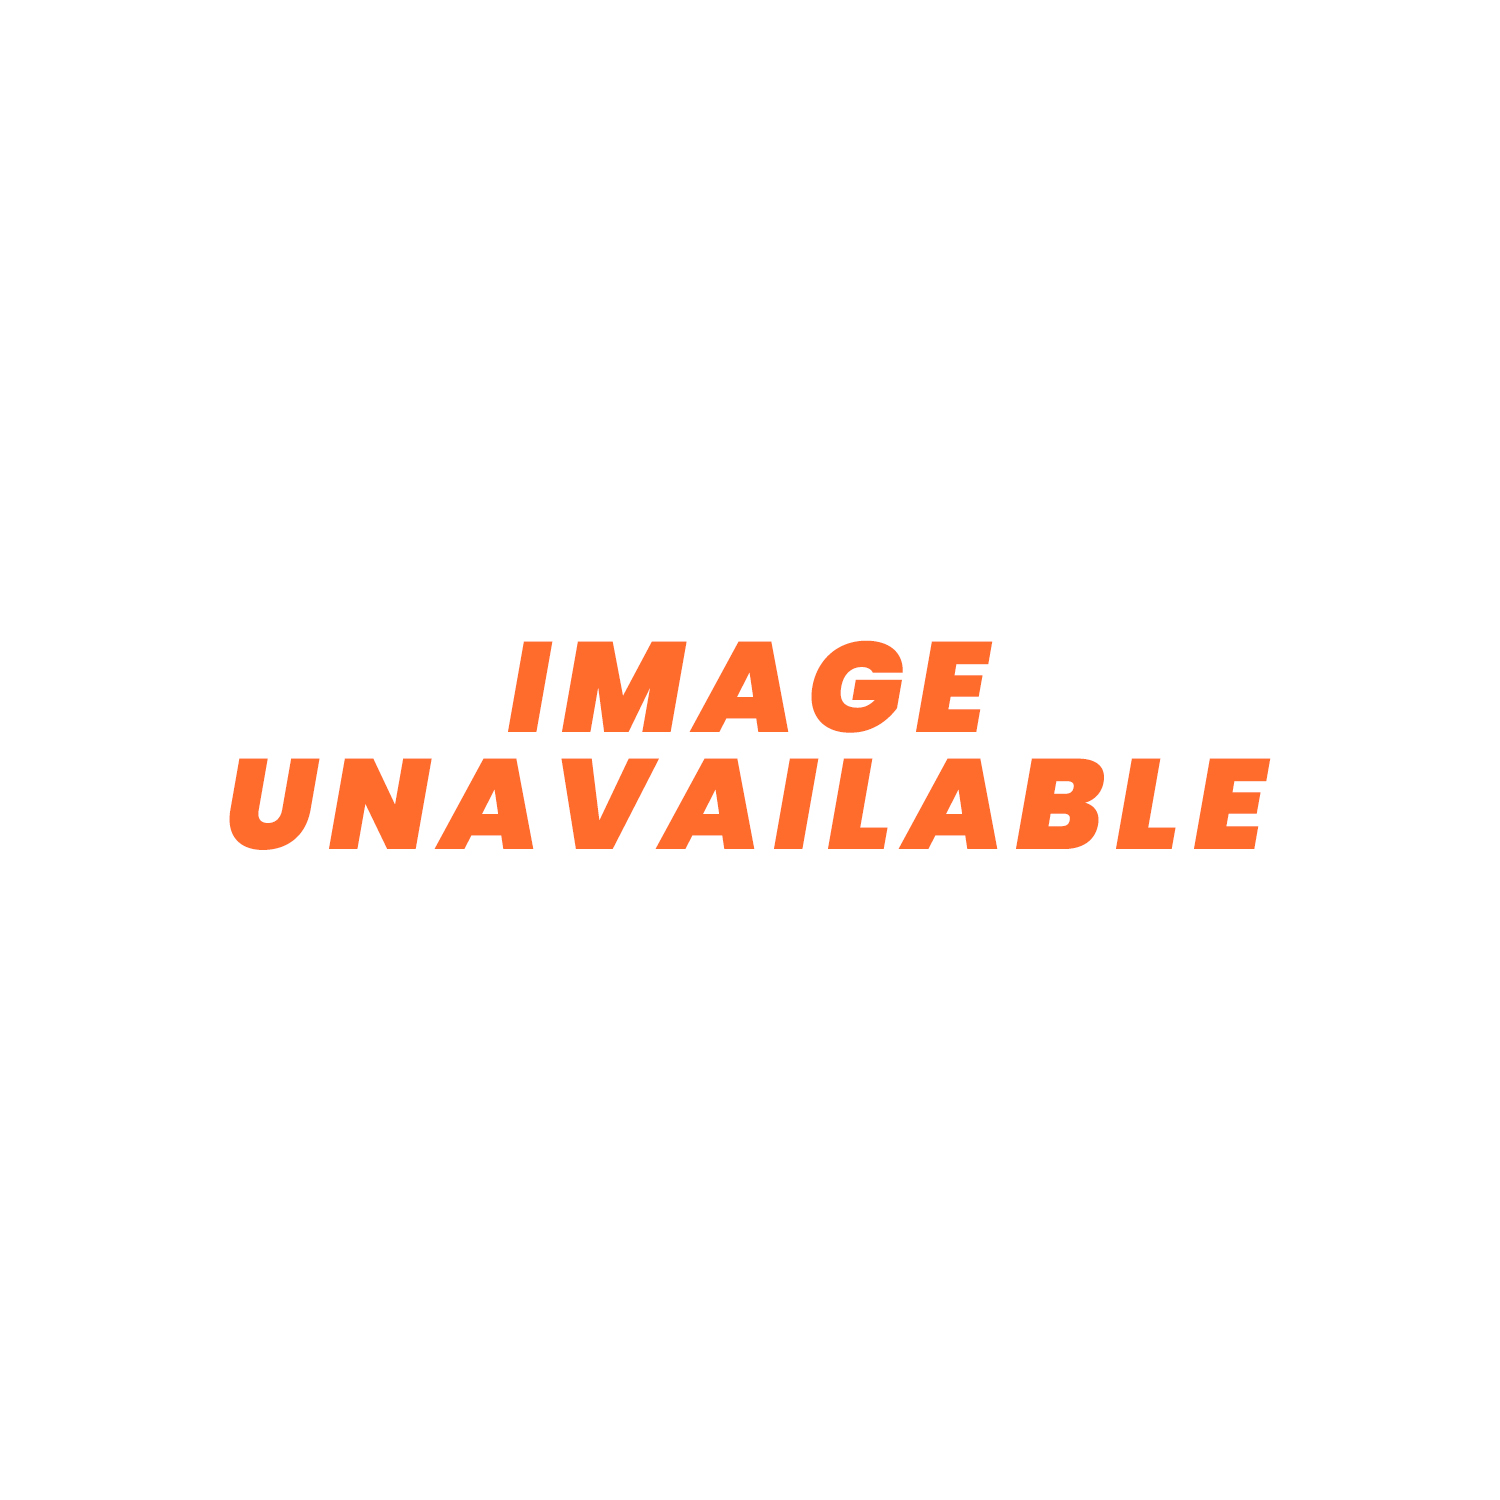 "SPAL Radiator Fan - 7.5"" (190mm) Push VA14-AP7/C-34S 407cfm"